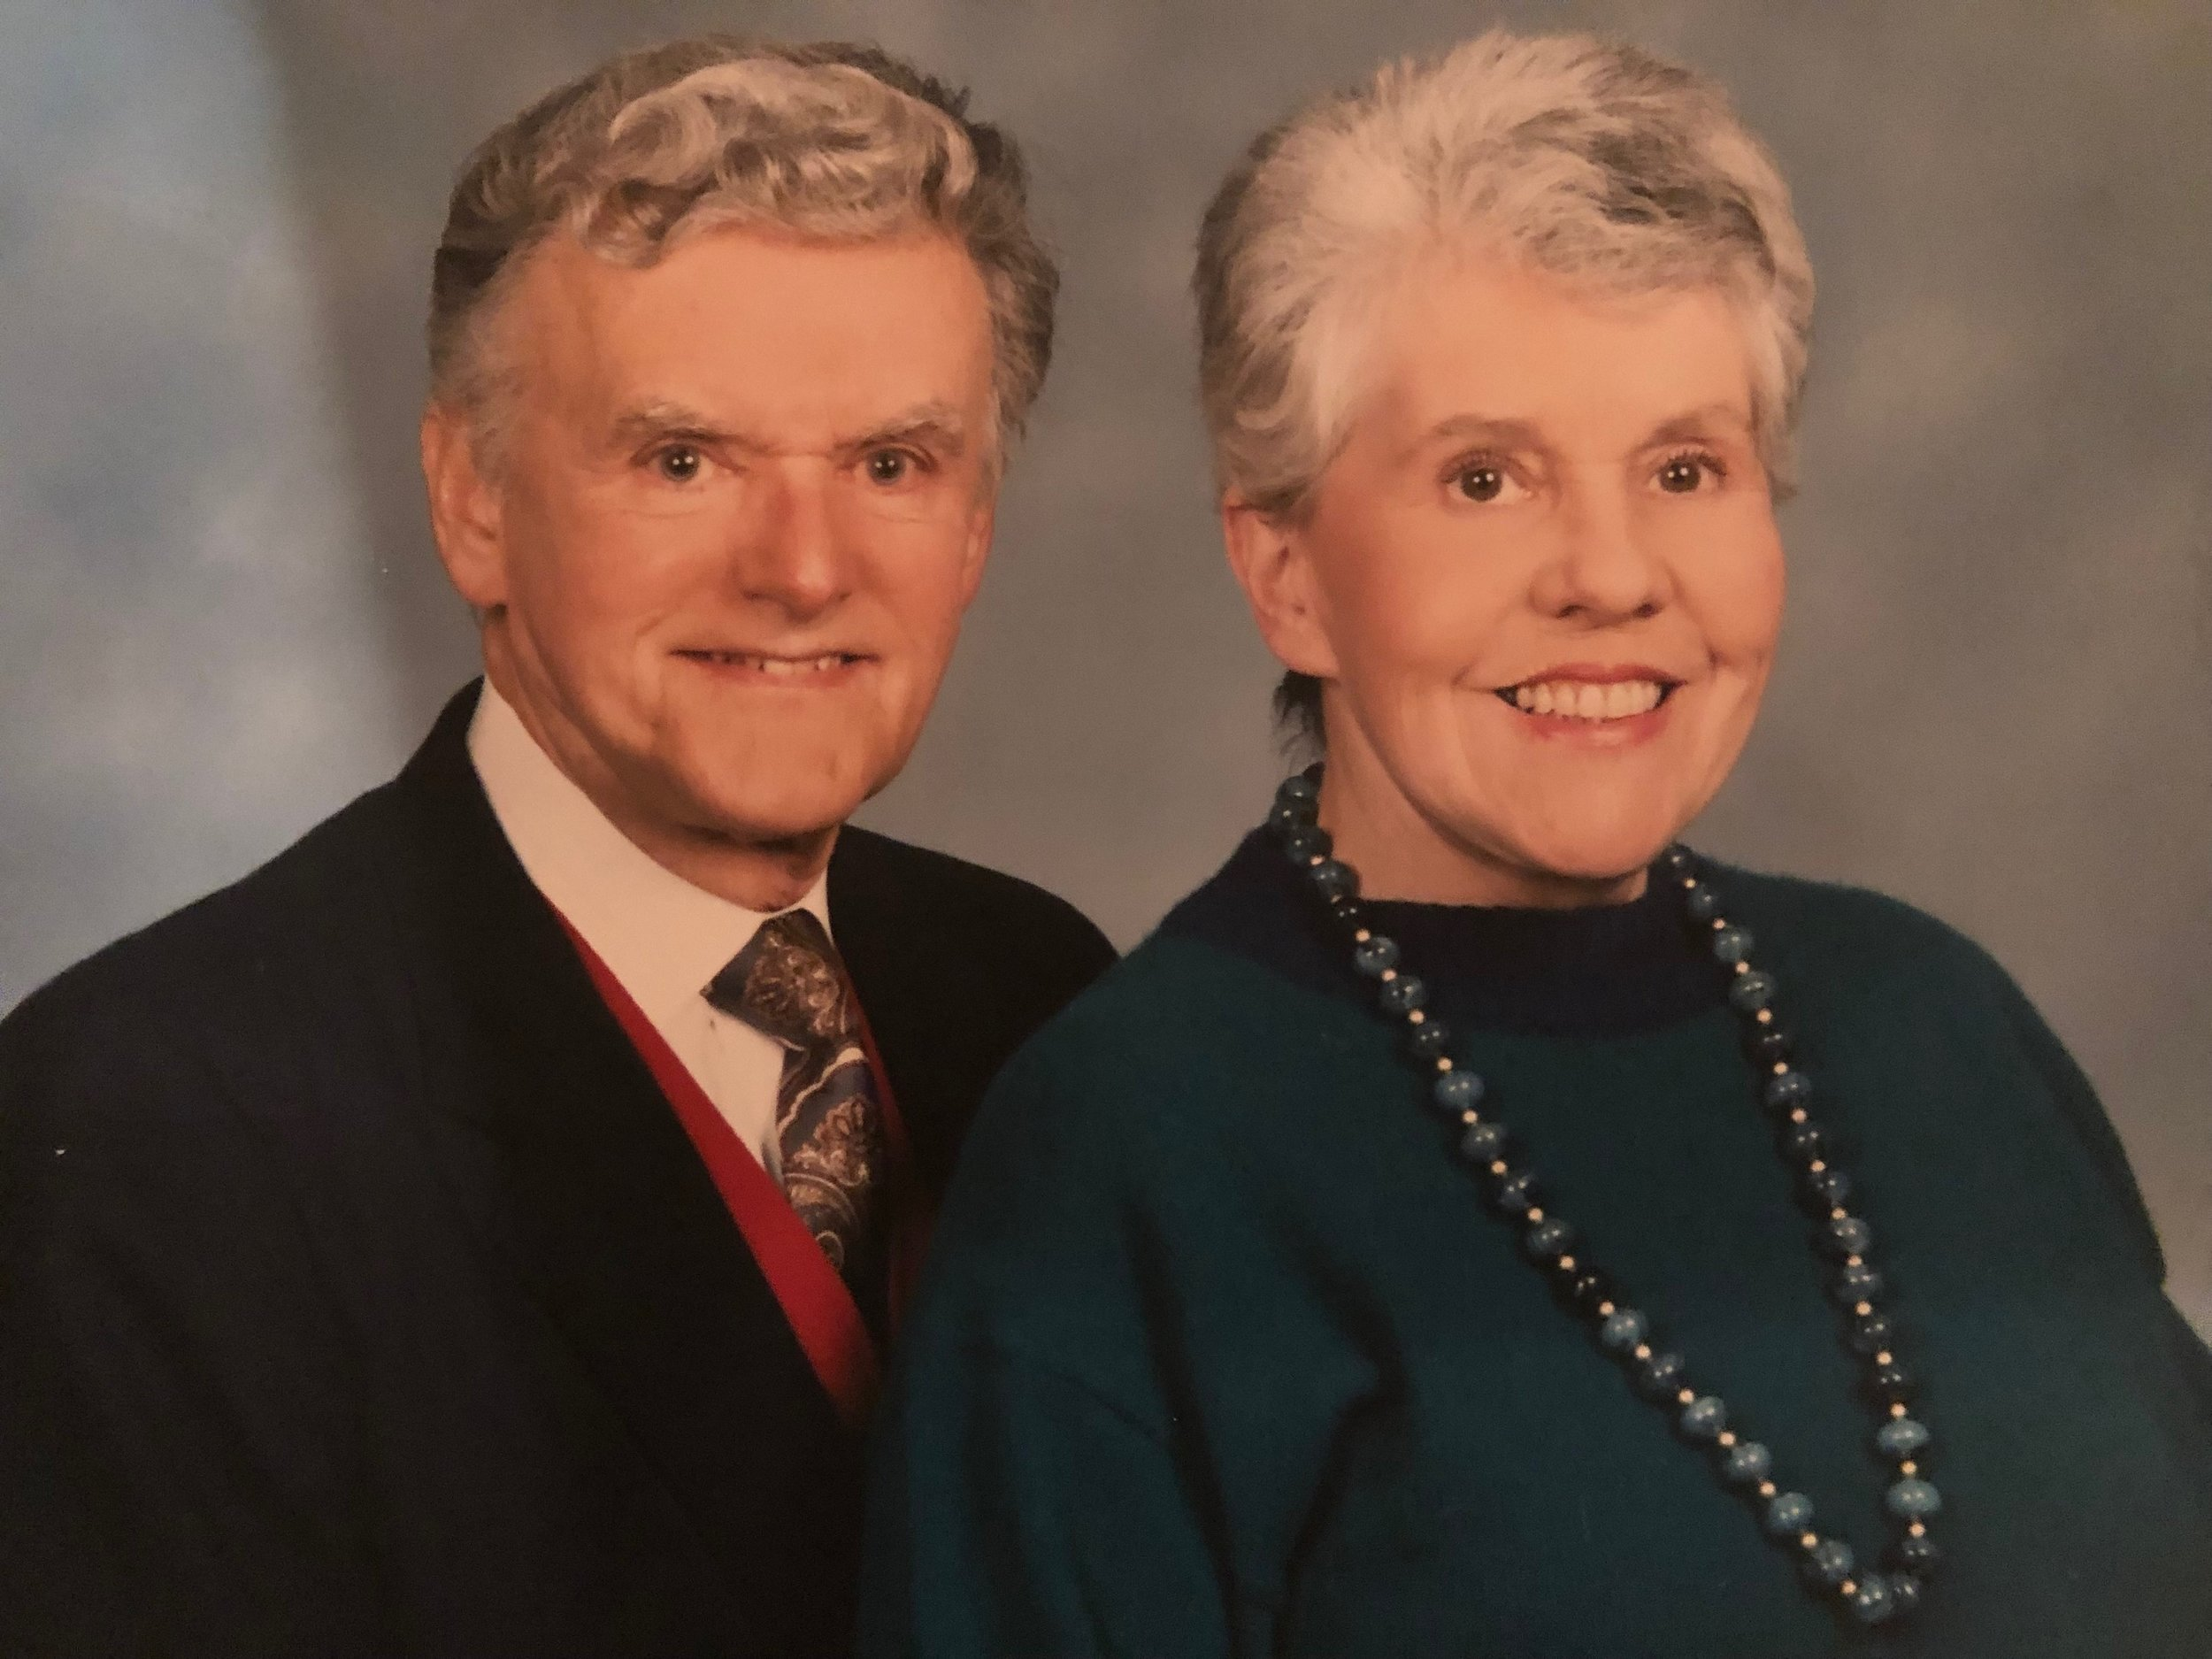 Post-surgery parents. Just in time for the Olan Mills portrait in the church directory.